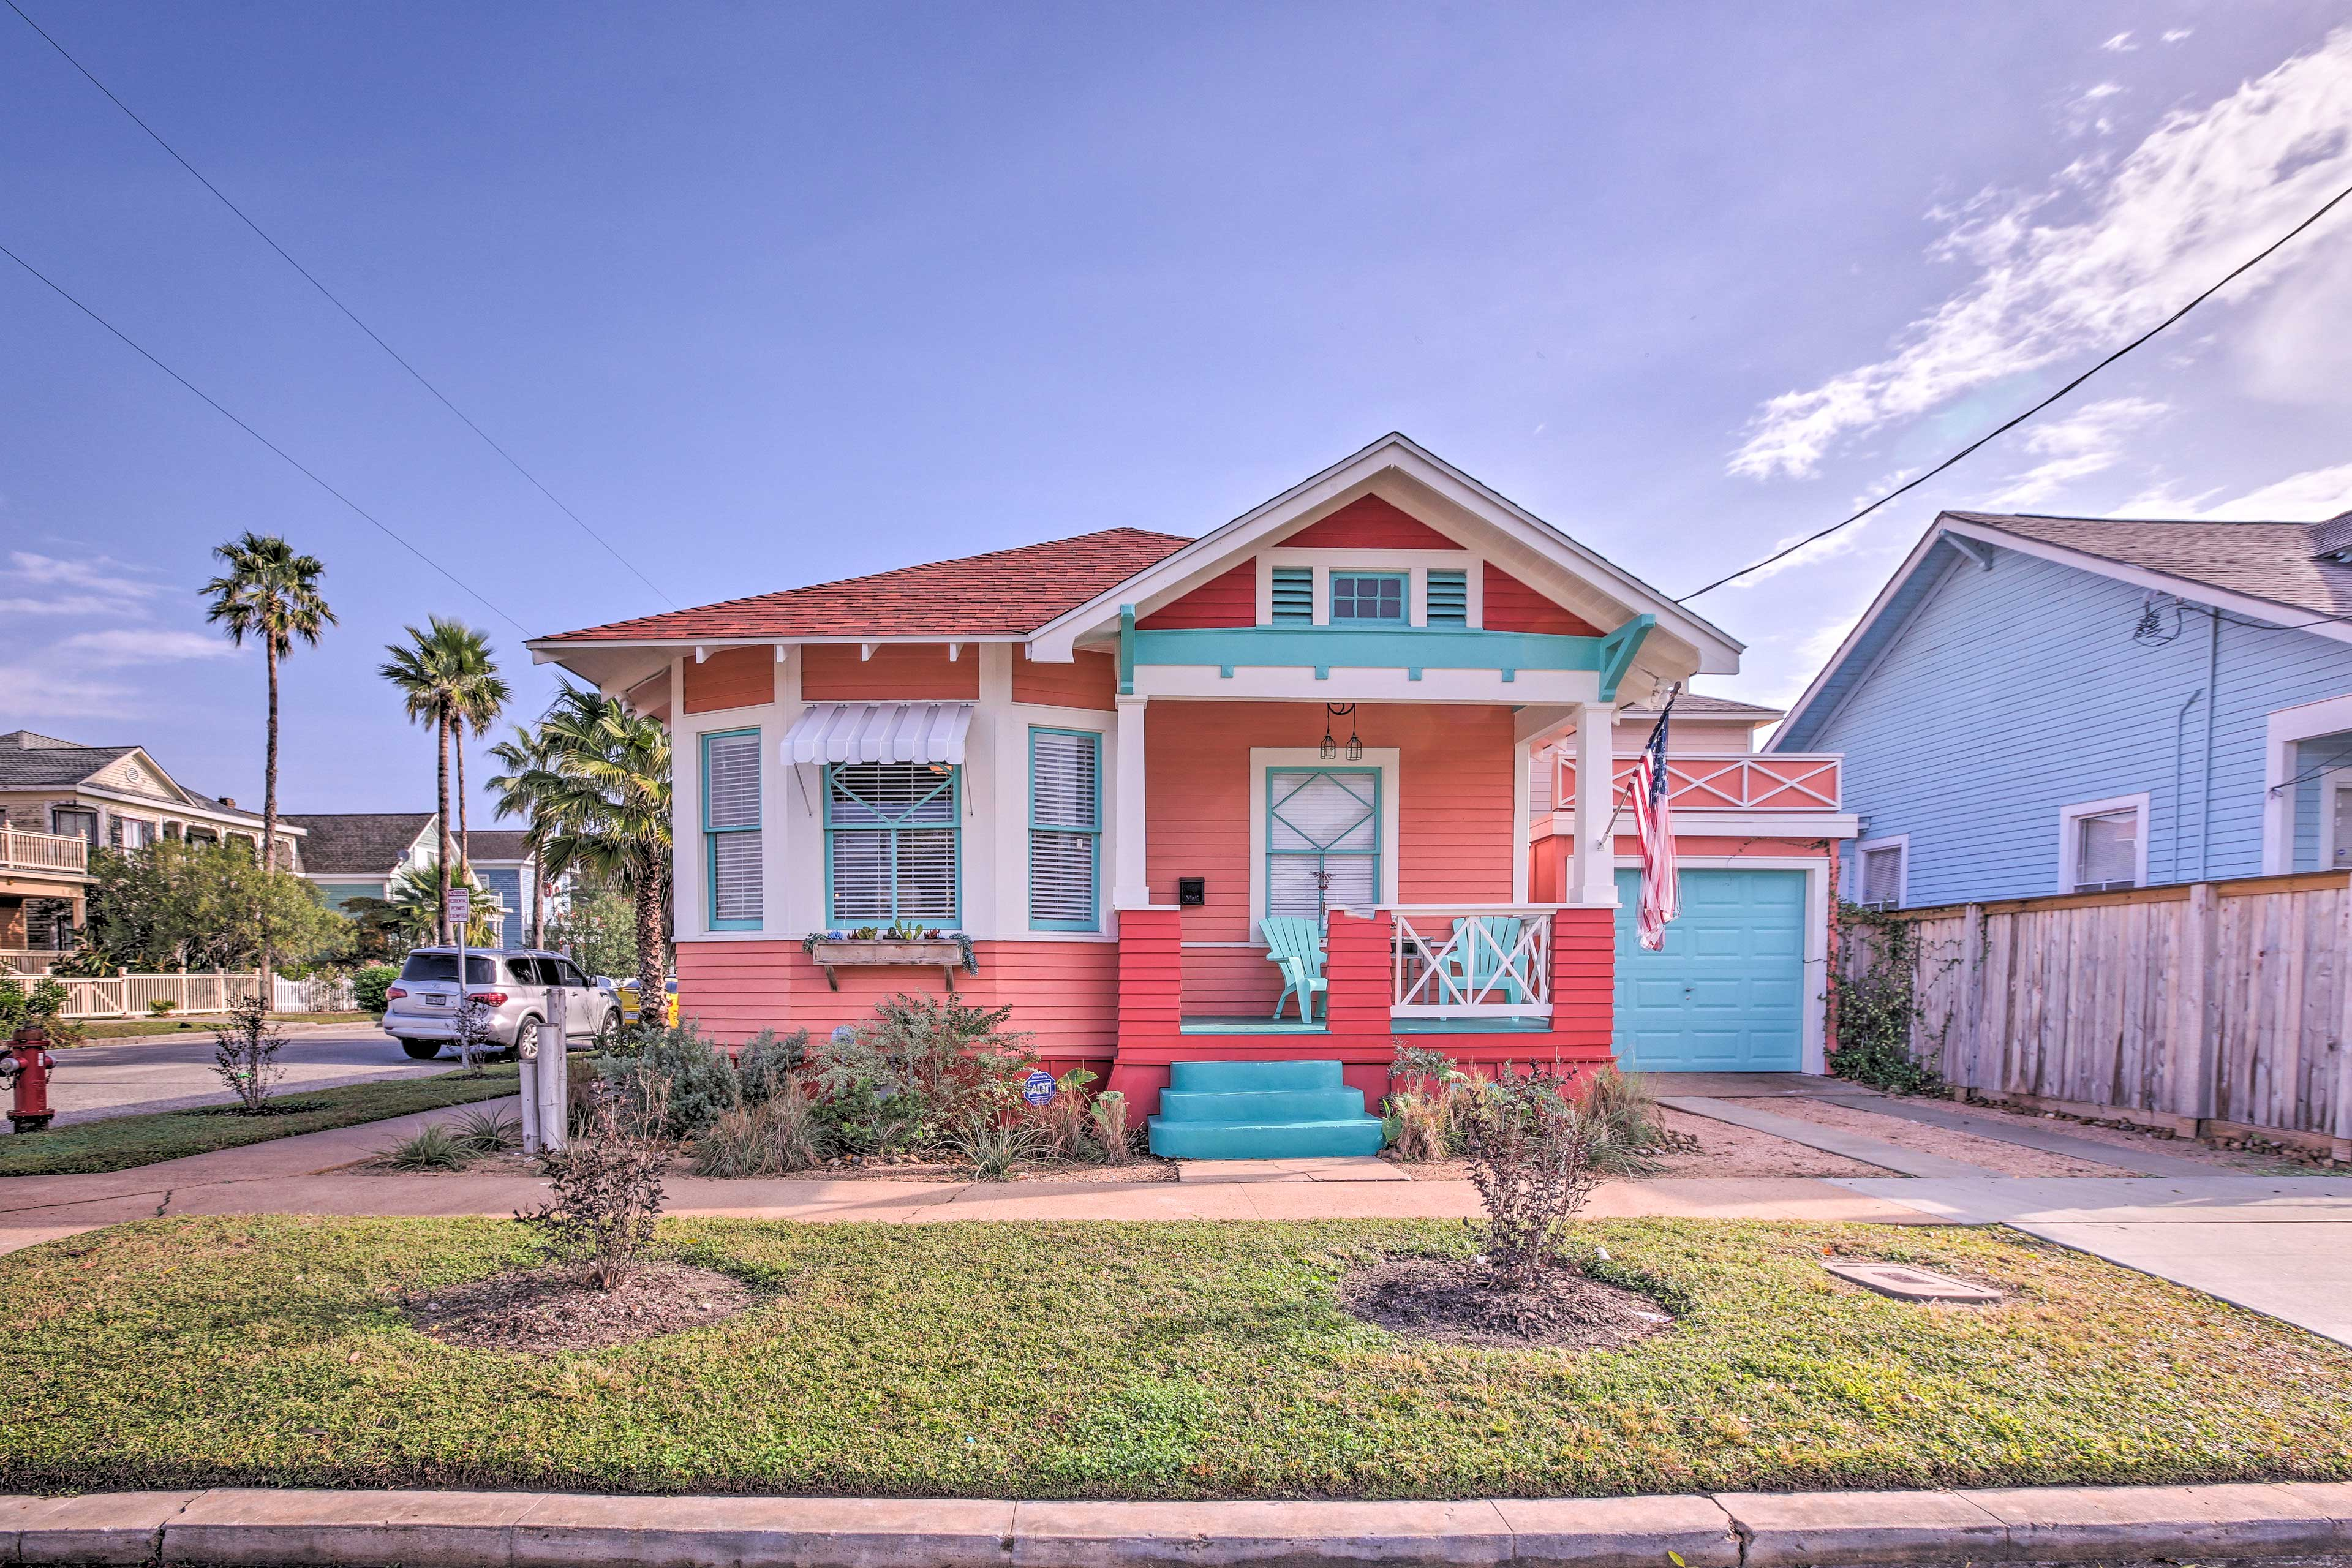 Stay at 'Rose's Beach House,' a 2-bedroom, 2-bathroom vacation rental home.